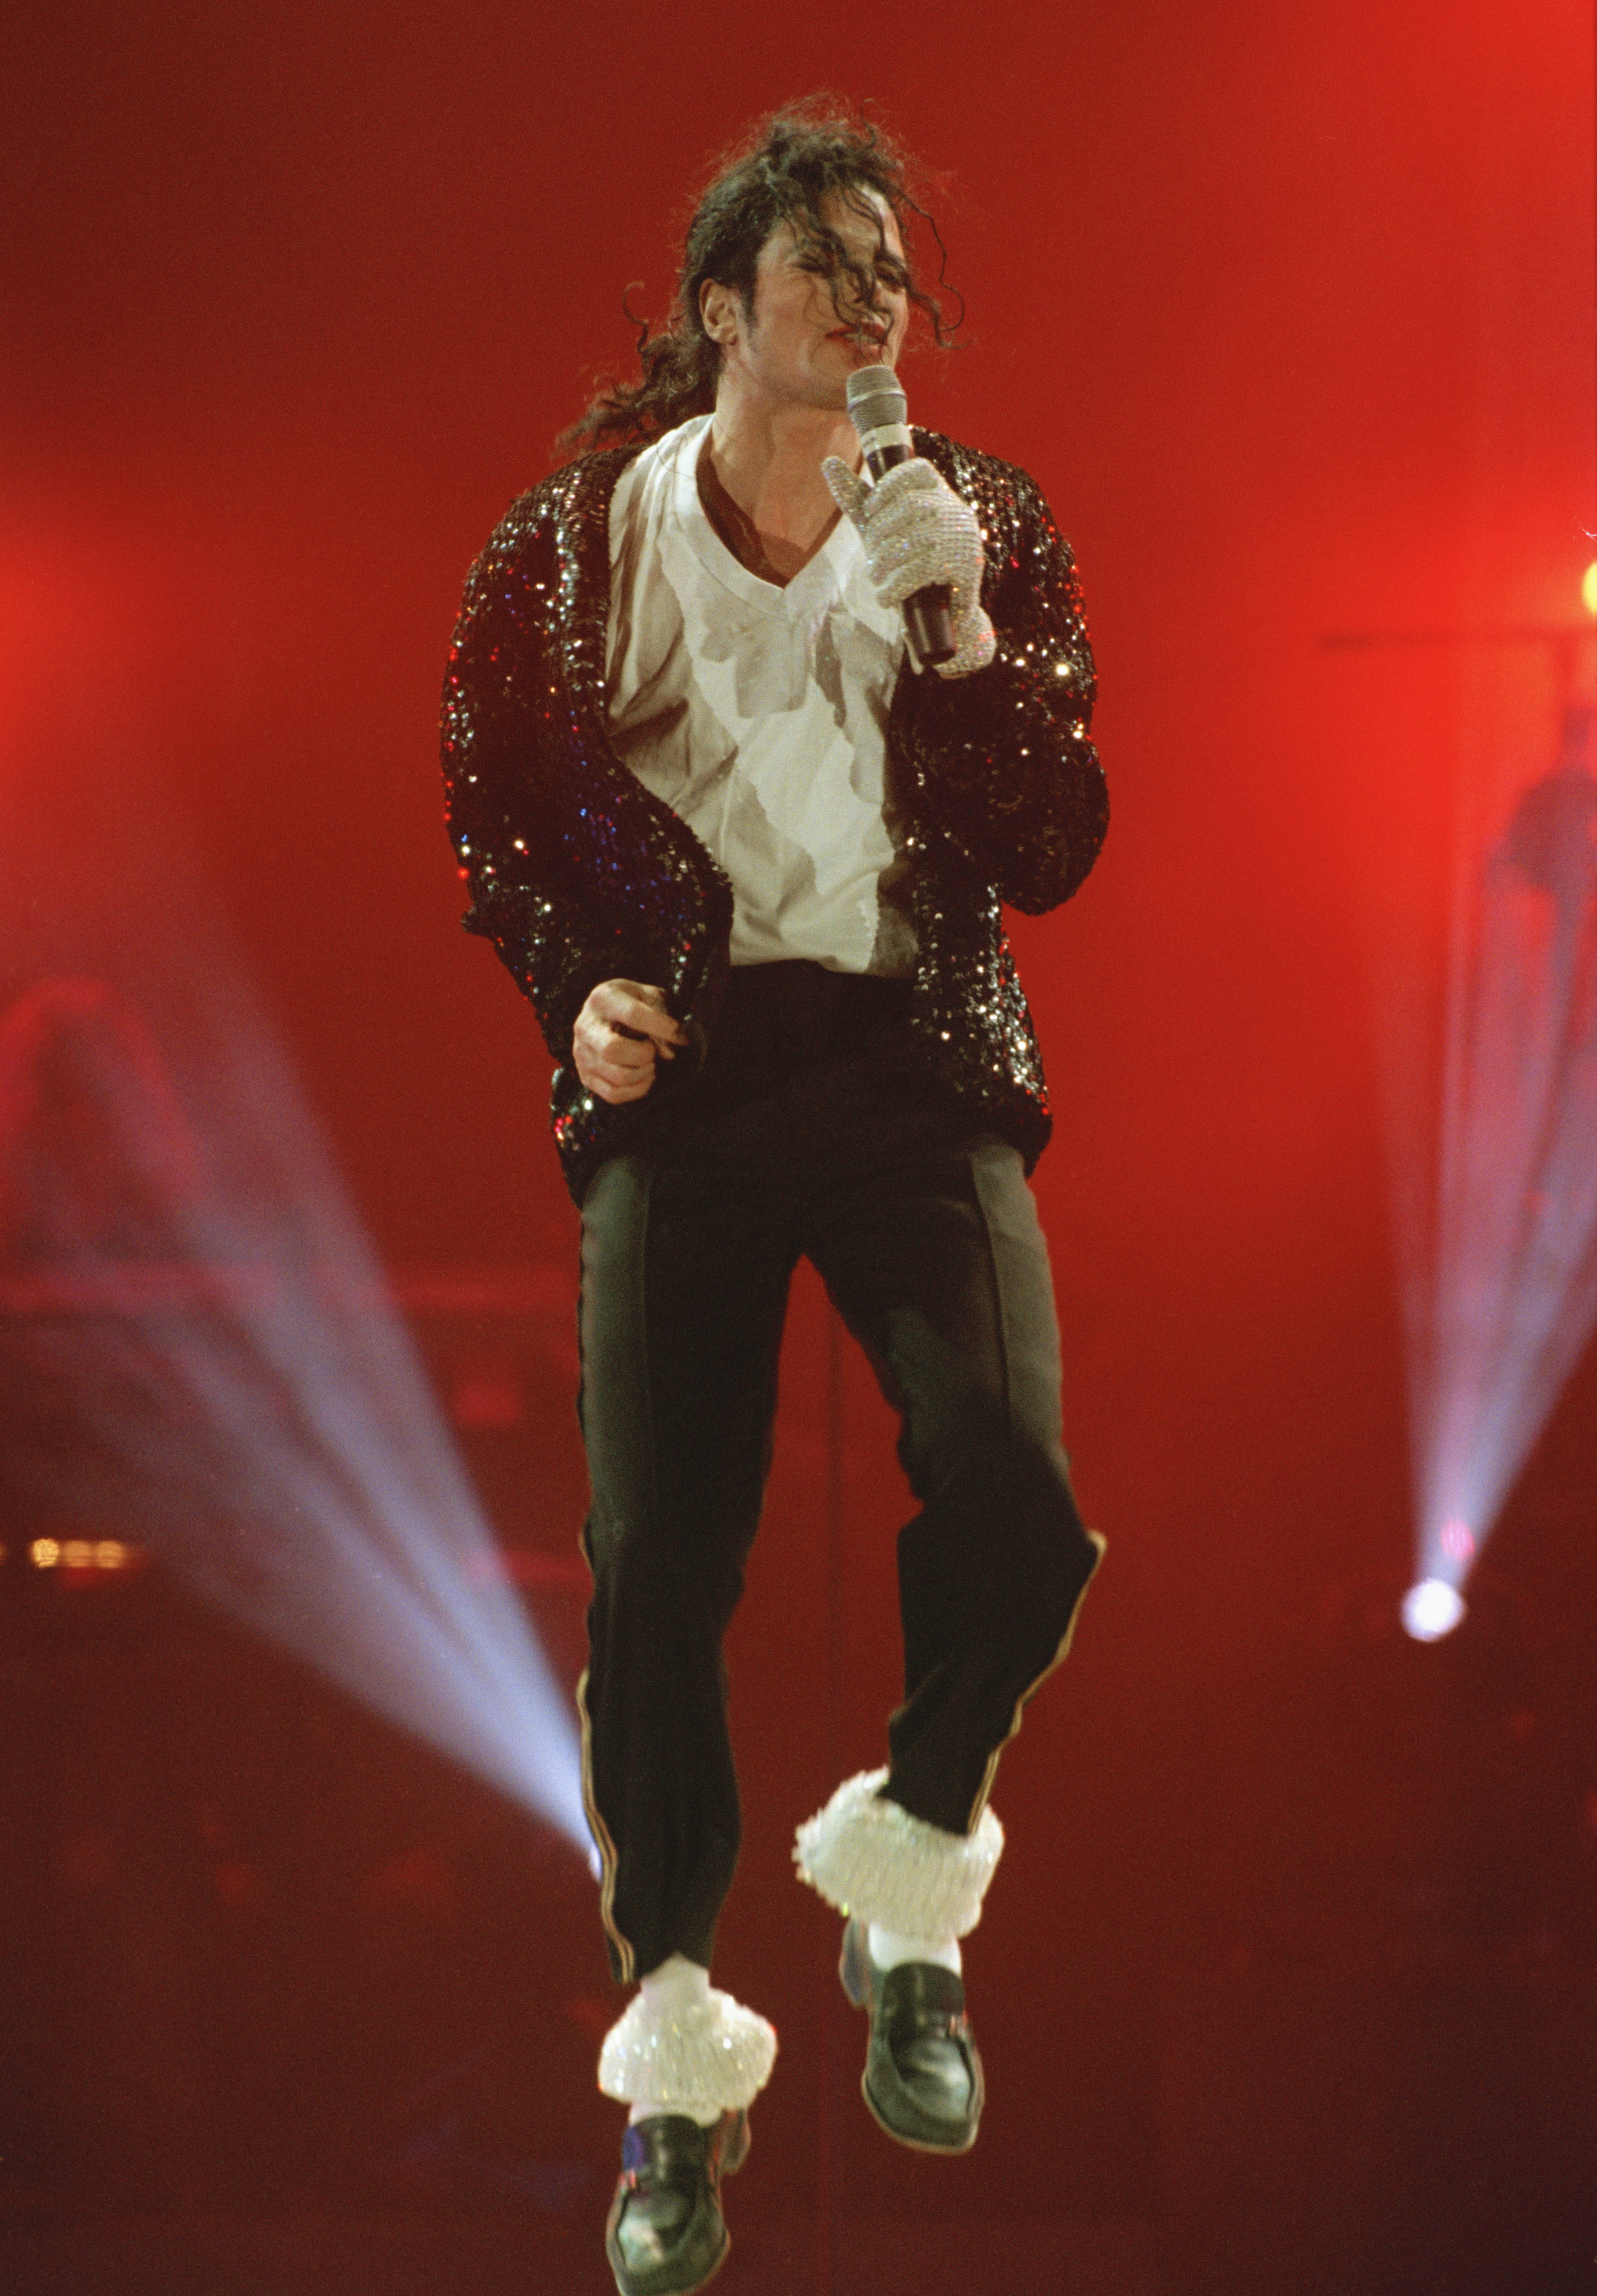 Michael Jackson in concert in Bremen during the HIStory World Tour, 1997. | Source: Getty Images